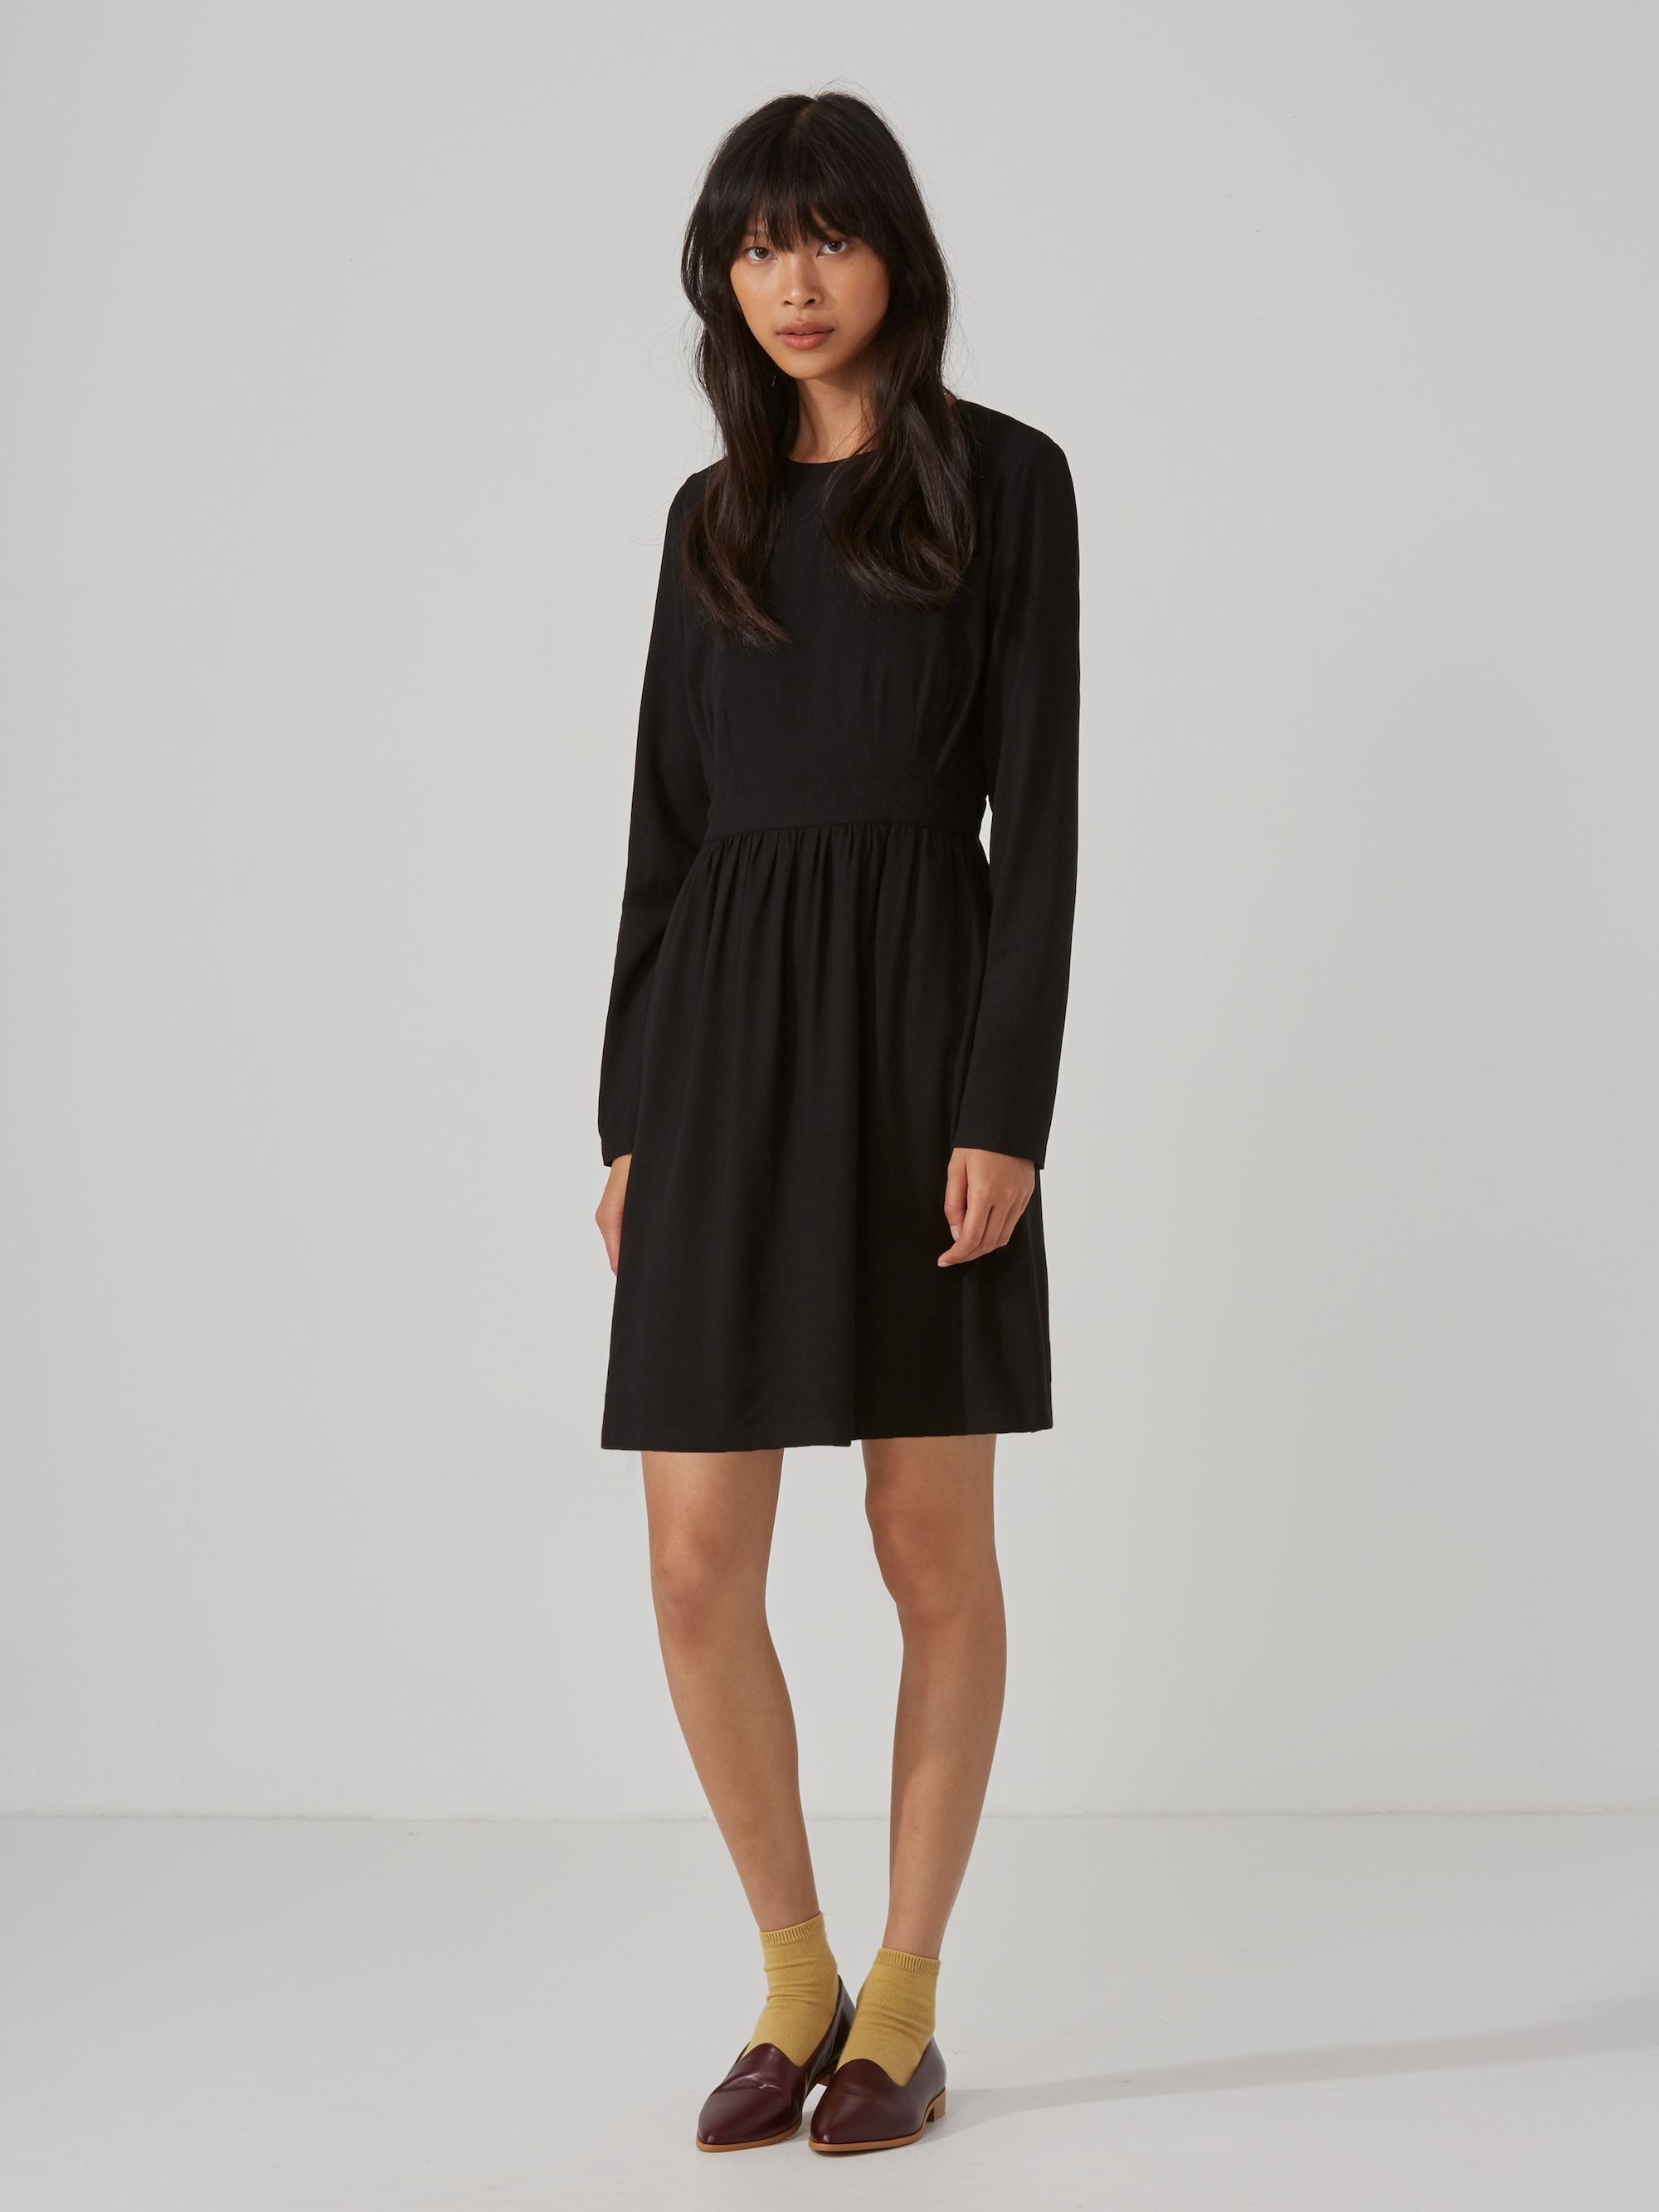 Long Sleeve Fit And Flare Dress In True Black Frank And Oak Fit And Flare Dress Clothes For Women Fit And Flare [ 2667 x 2000 Pixel ]